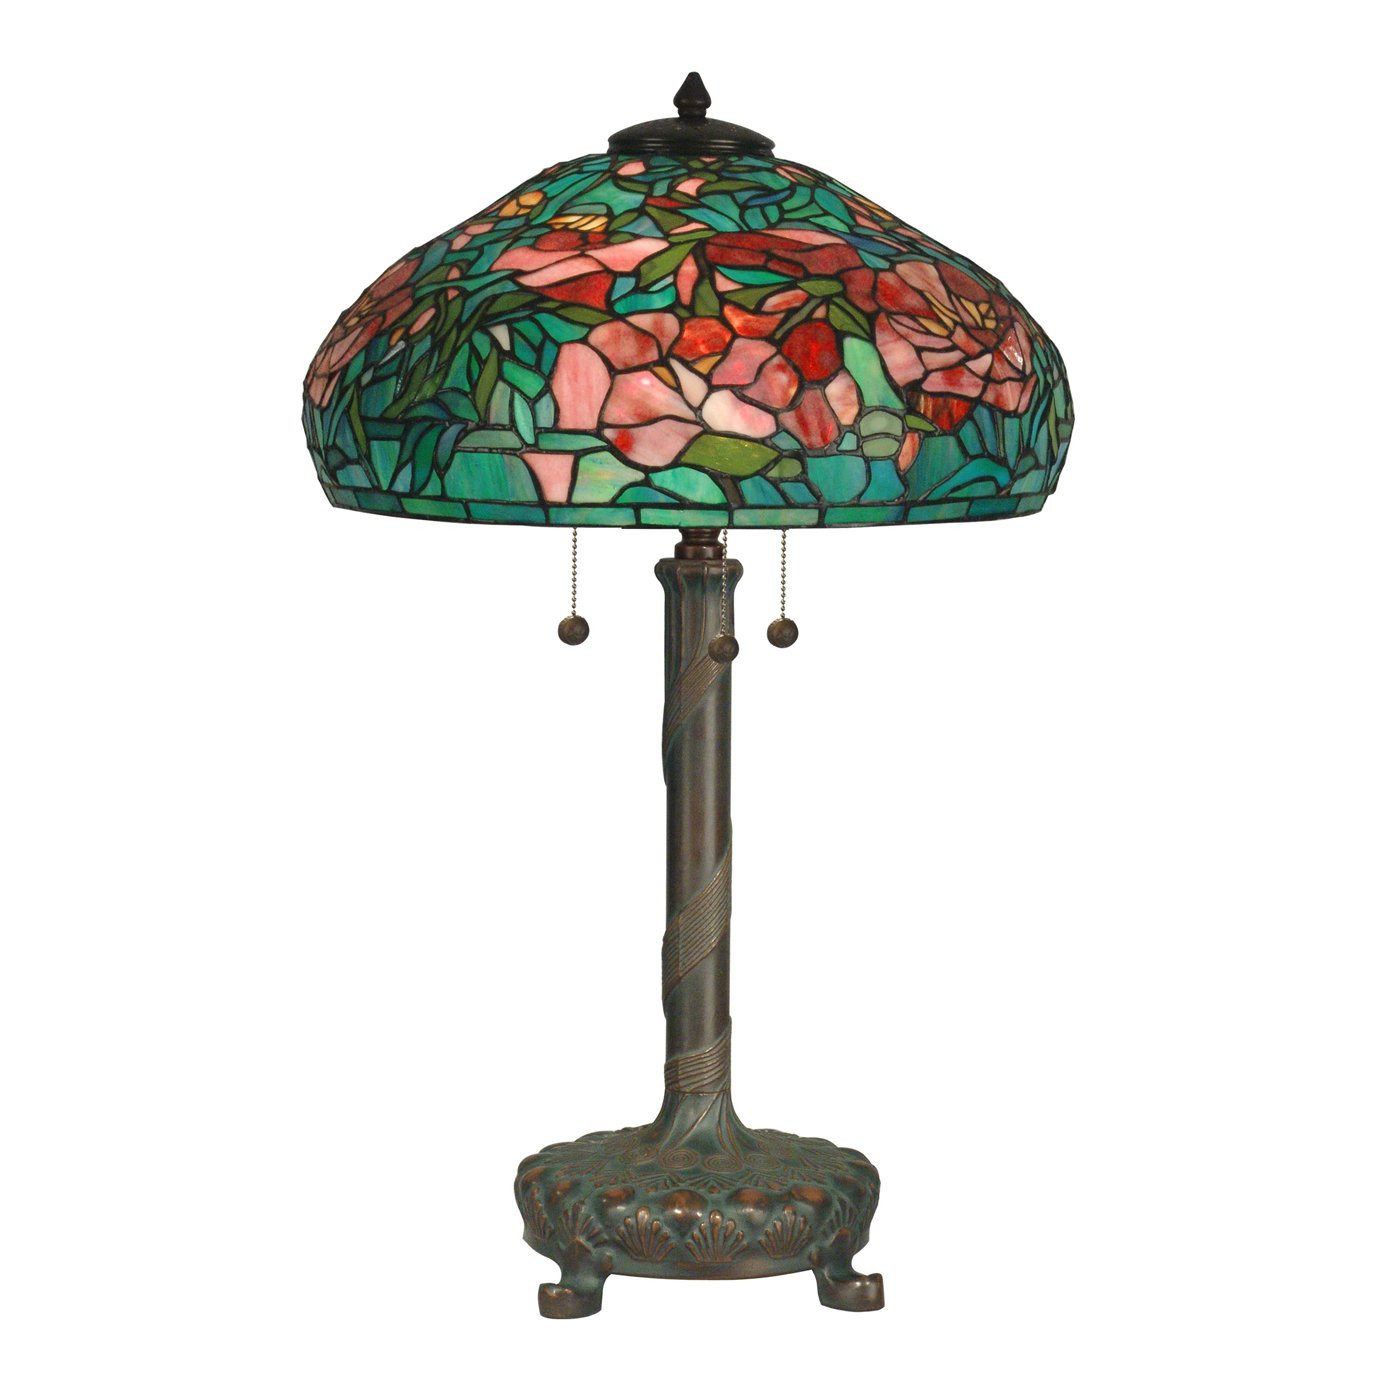 Antique Tiffany Lamps New Antique Tiffany Lamps Bing Images Of Amazing 47 Photos Antique Tiffany Lamps